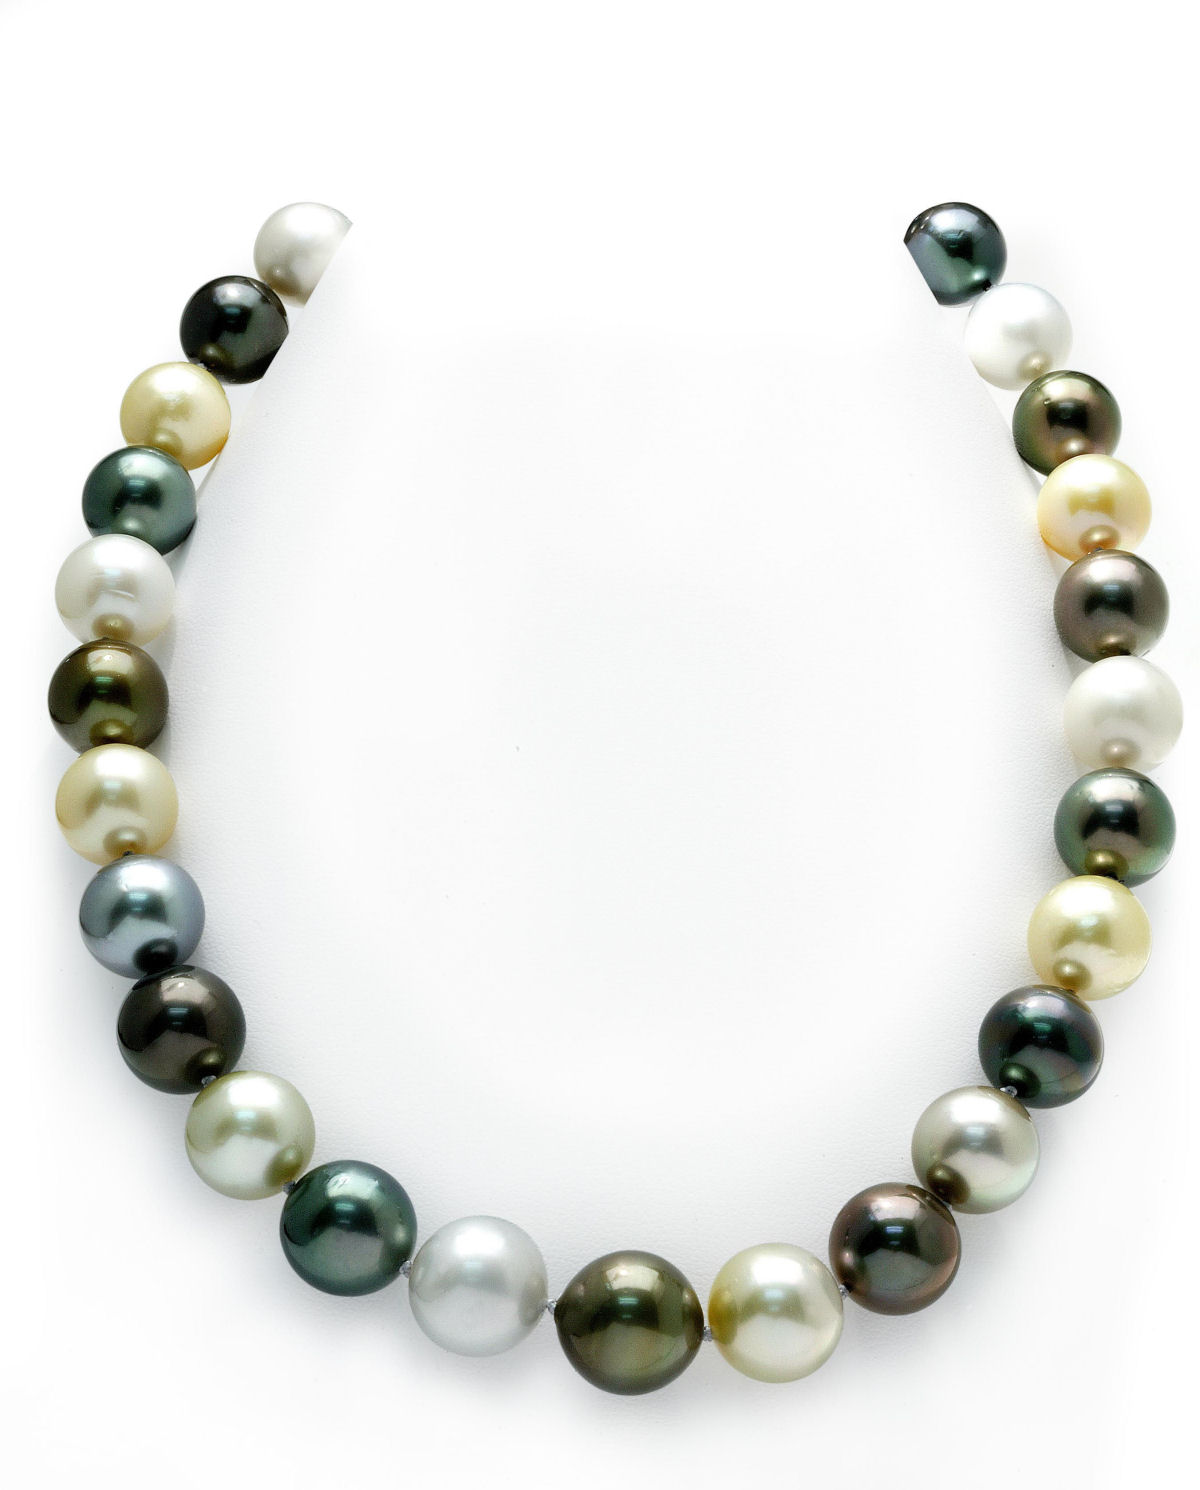 14K Gold 12-15mm Tahitian & Golden South Sea Multicolor Cultured Pearl Necklace by The Pearl Source